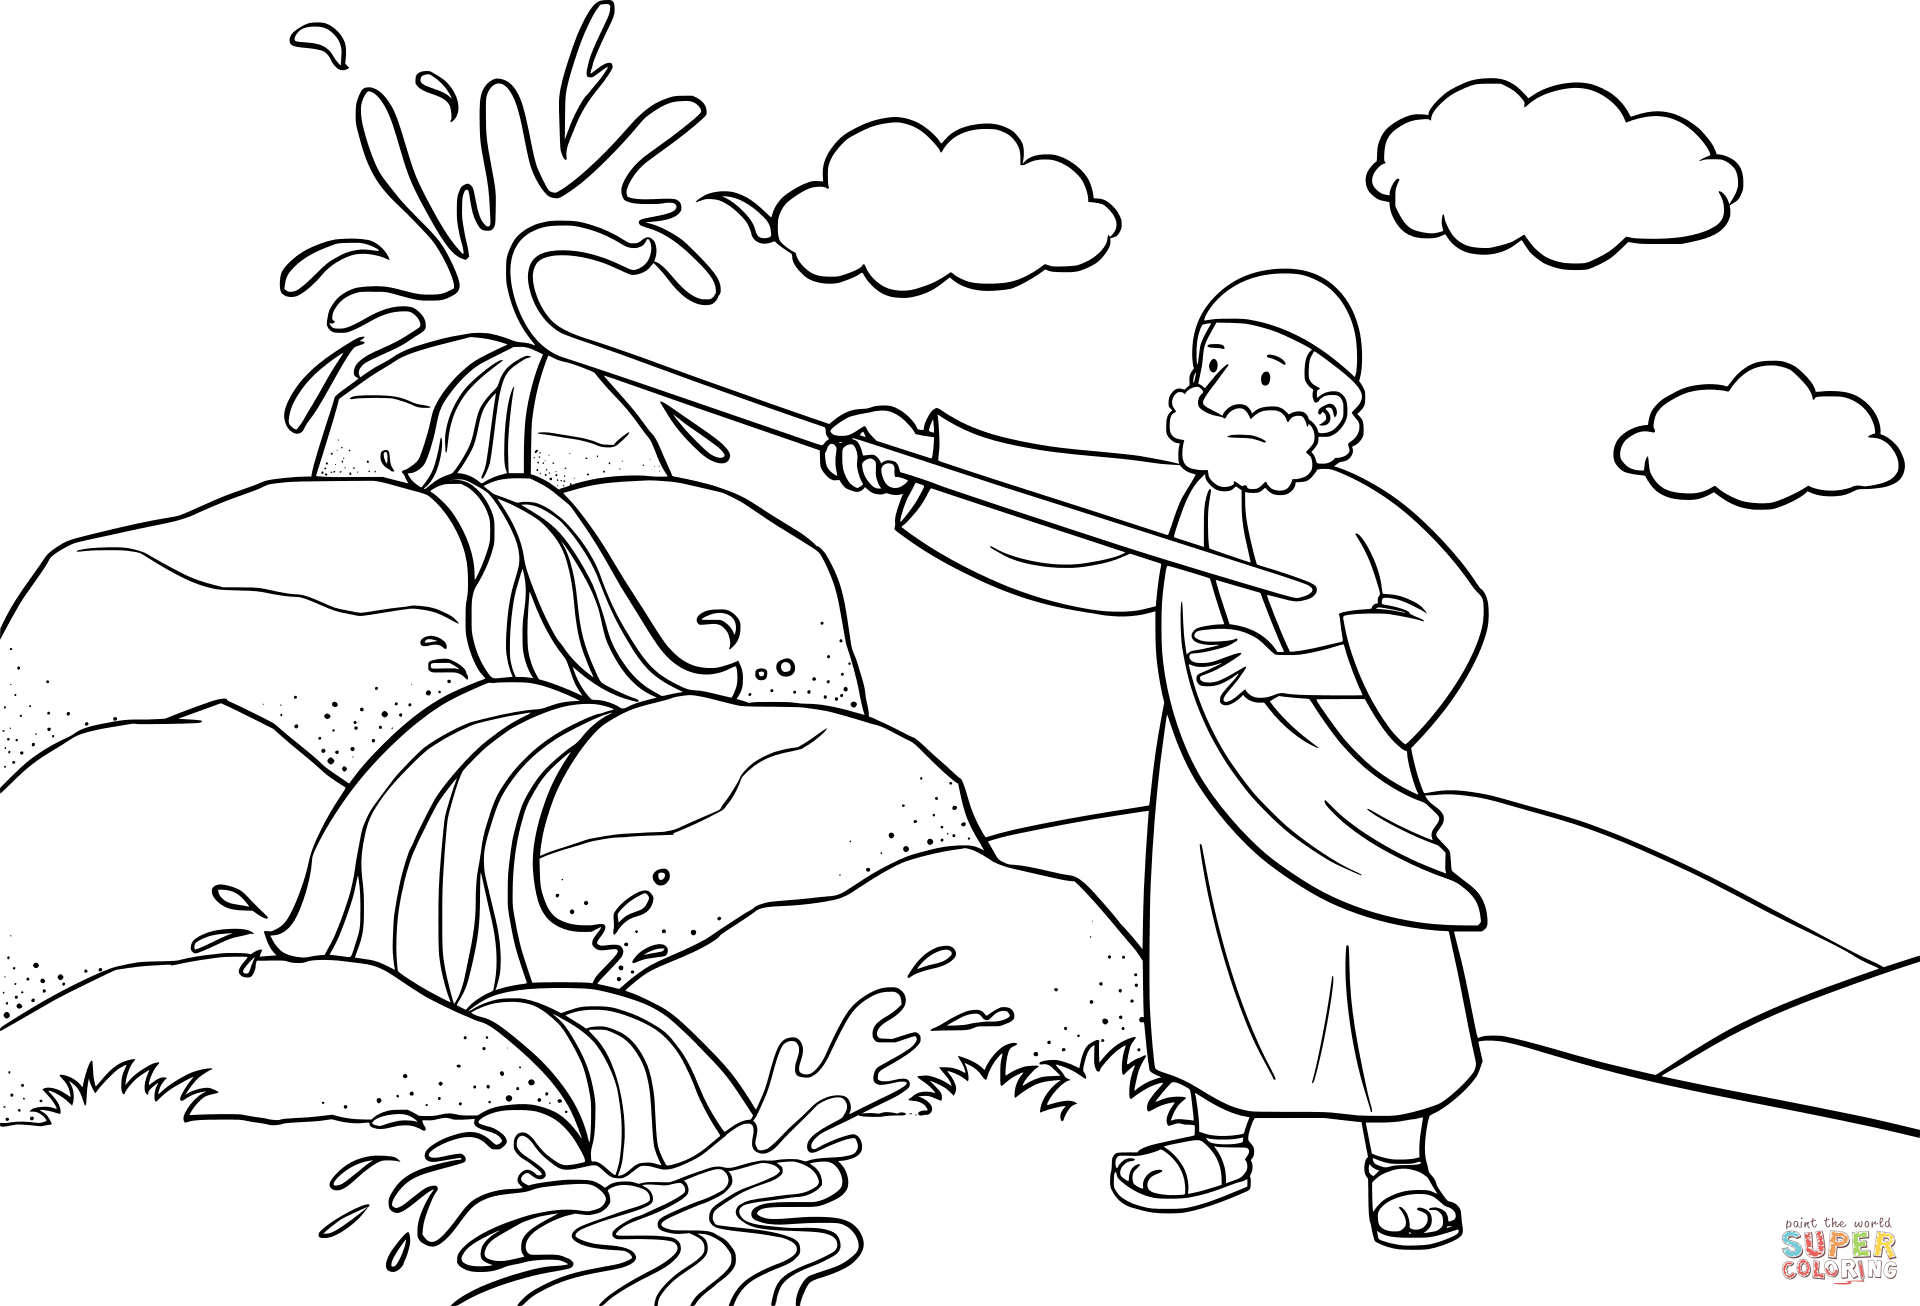 coloring pages ten commandments Download-the Moses Strikes the Rock with His Staff coloring pages to view printable version or color it online patible with iPad and Android tablets 9-l